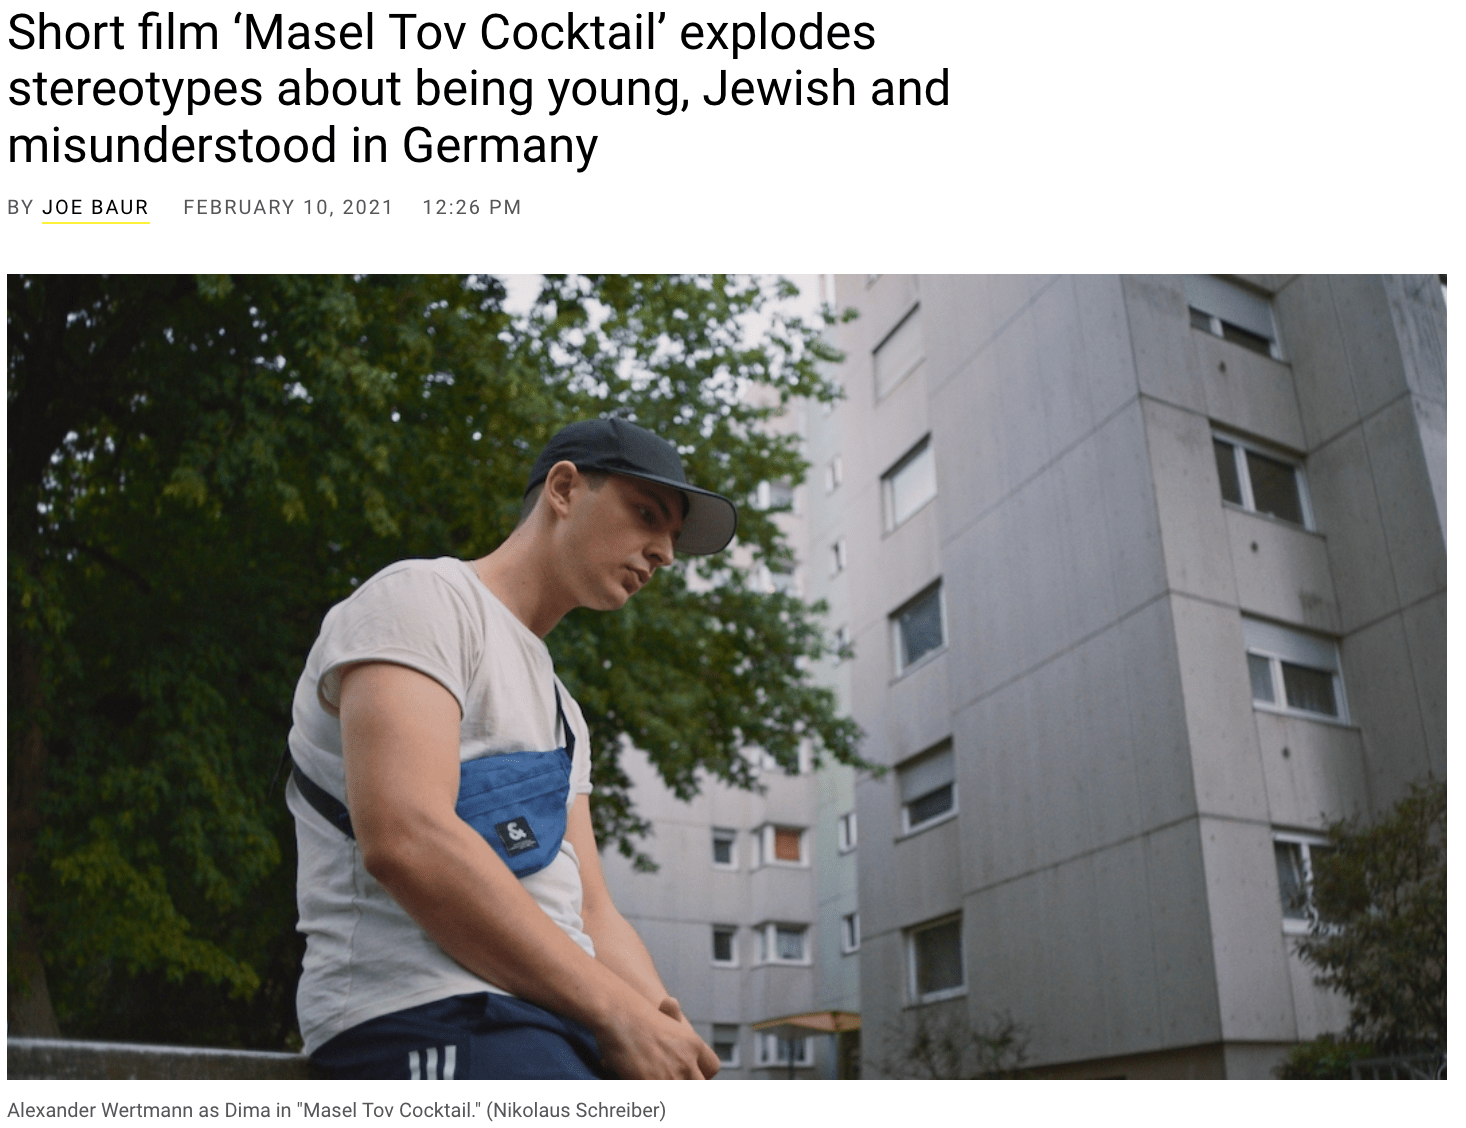 Short film 'Masel Tov Cocktail' explodes stereotypes about being young, Jewish and misunderstood in Germany - Jewish Telegraphic Agency